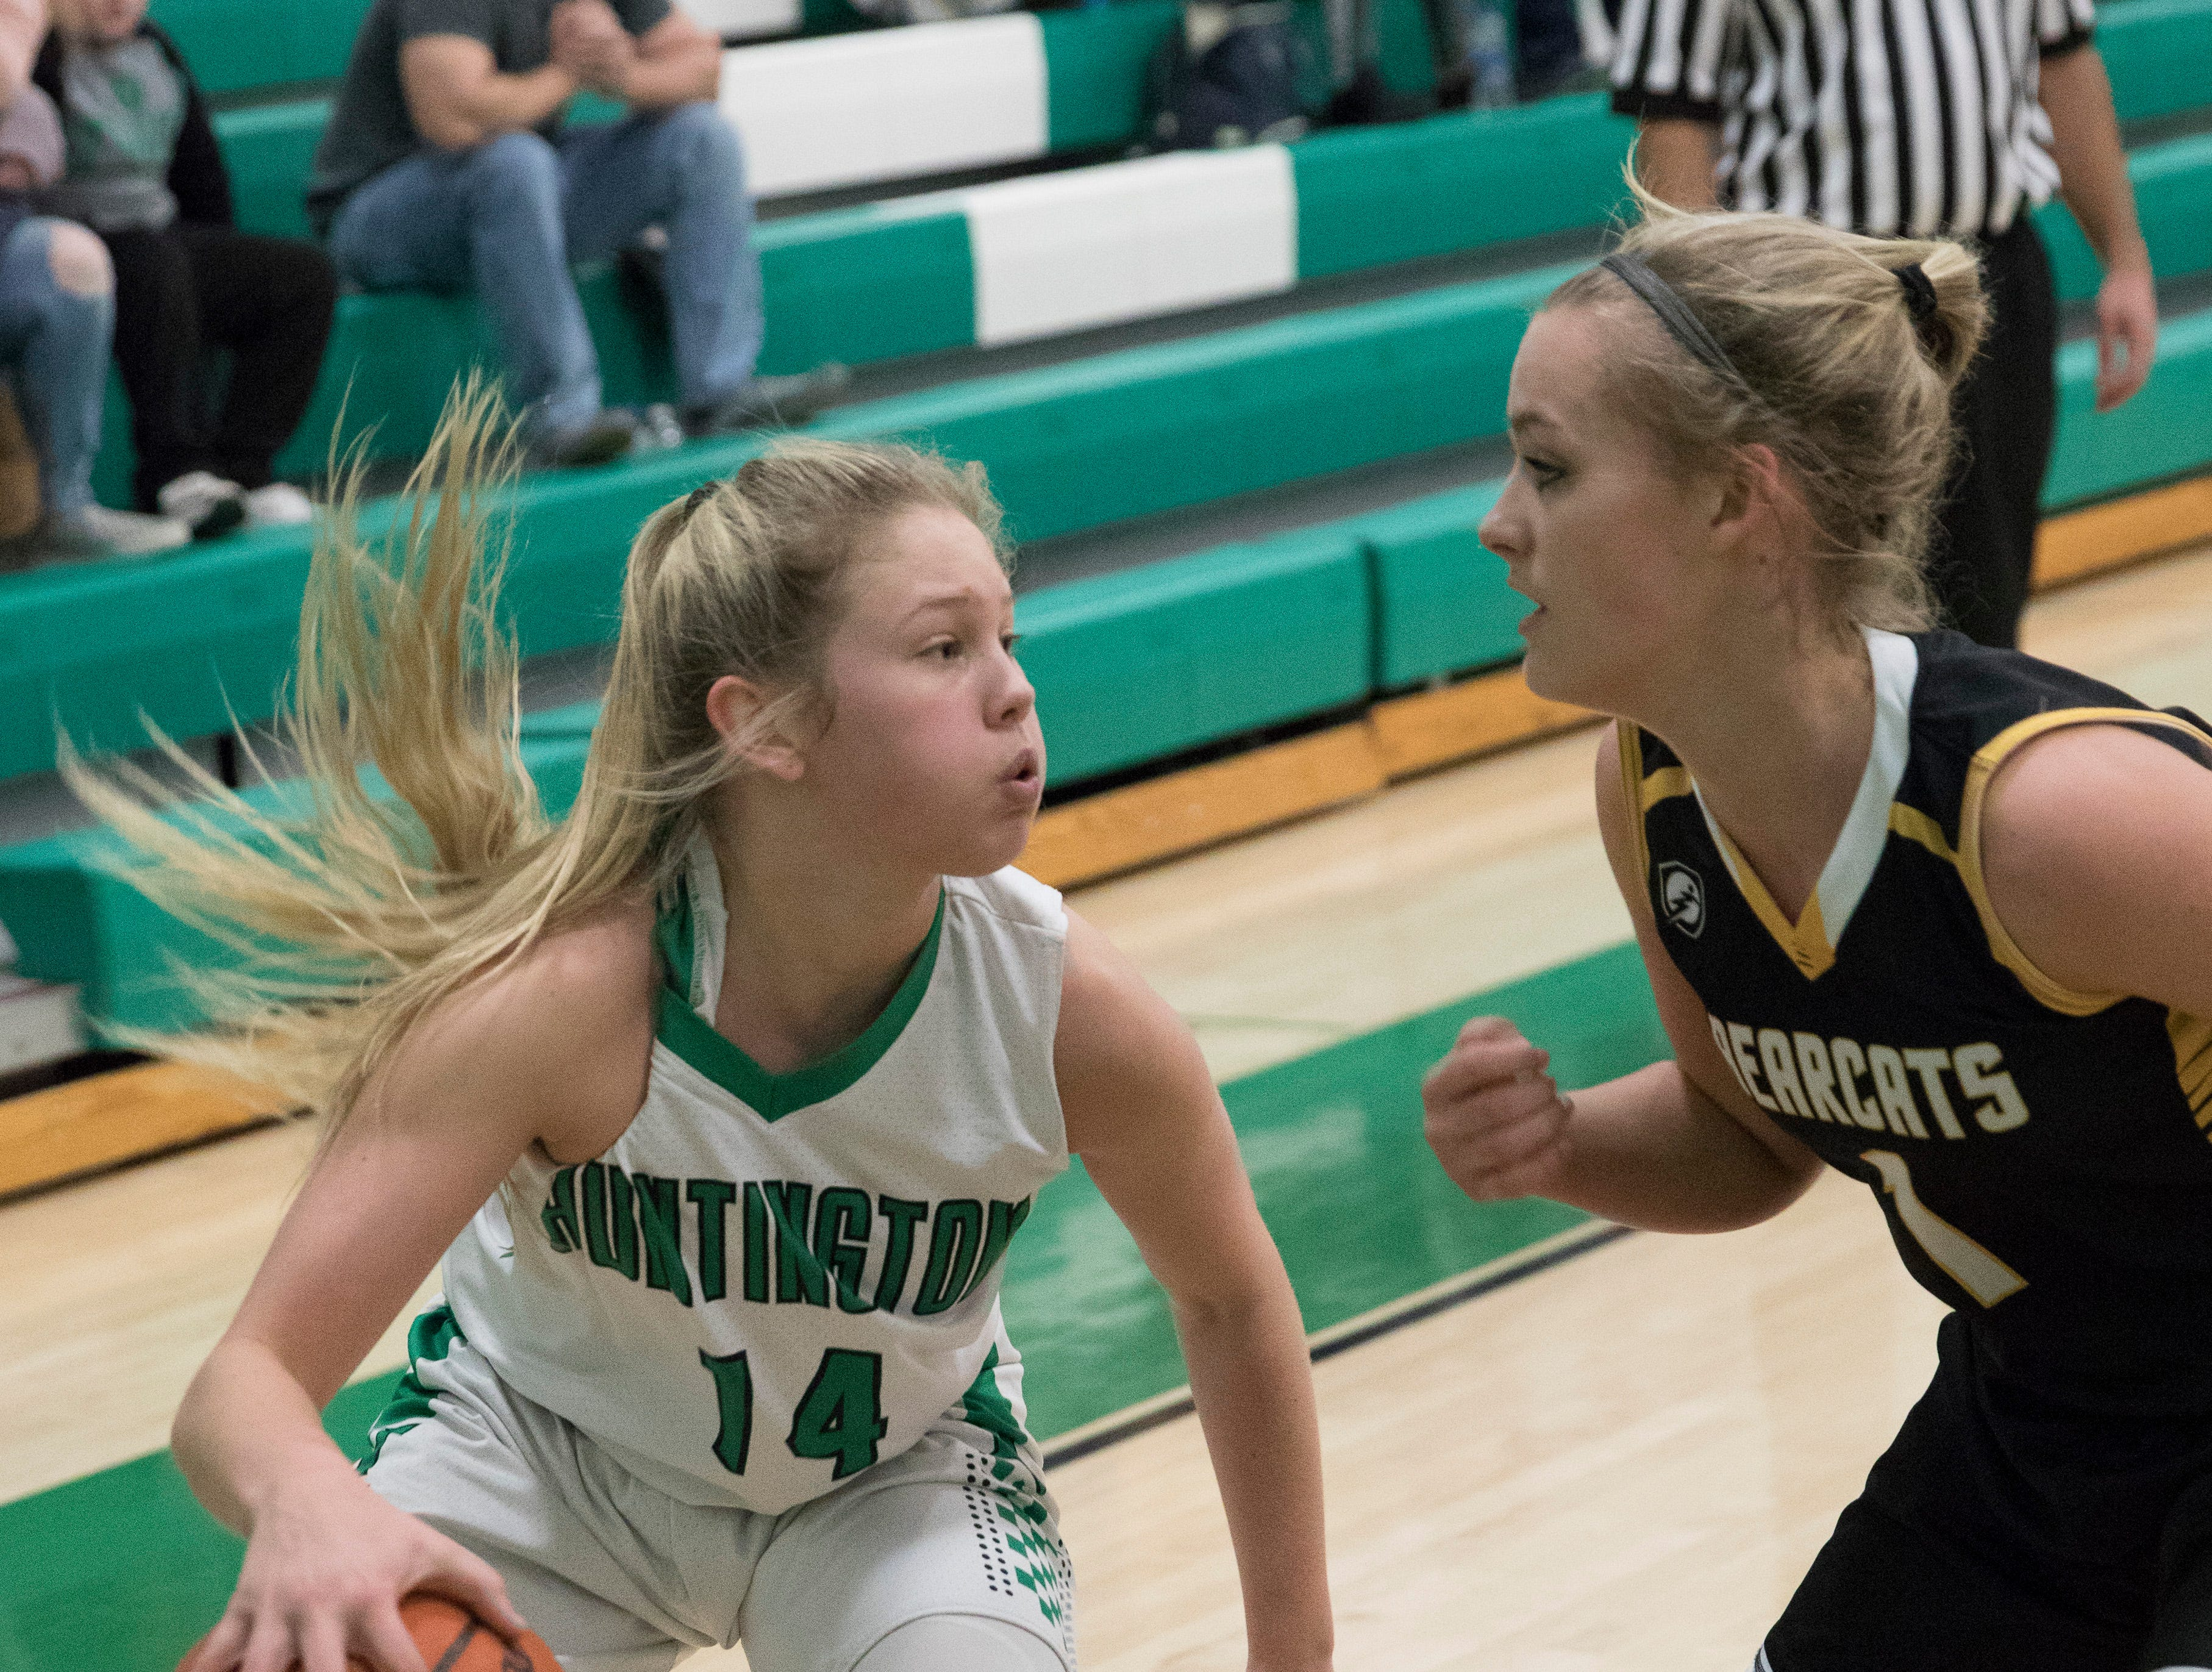 Huntington freshman Allison Bayse looks for an opening to pass Tuesday night against Paint Valley at Huntington High School. Huntington defeated Paint Valley 68-51.